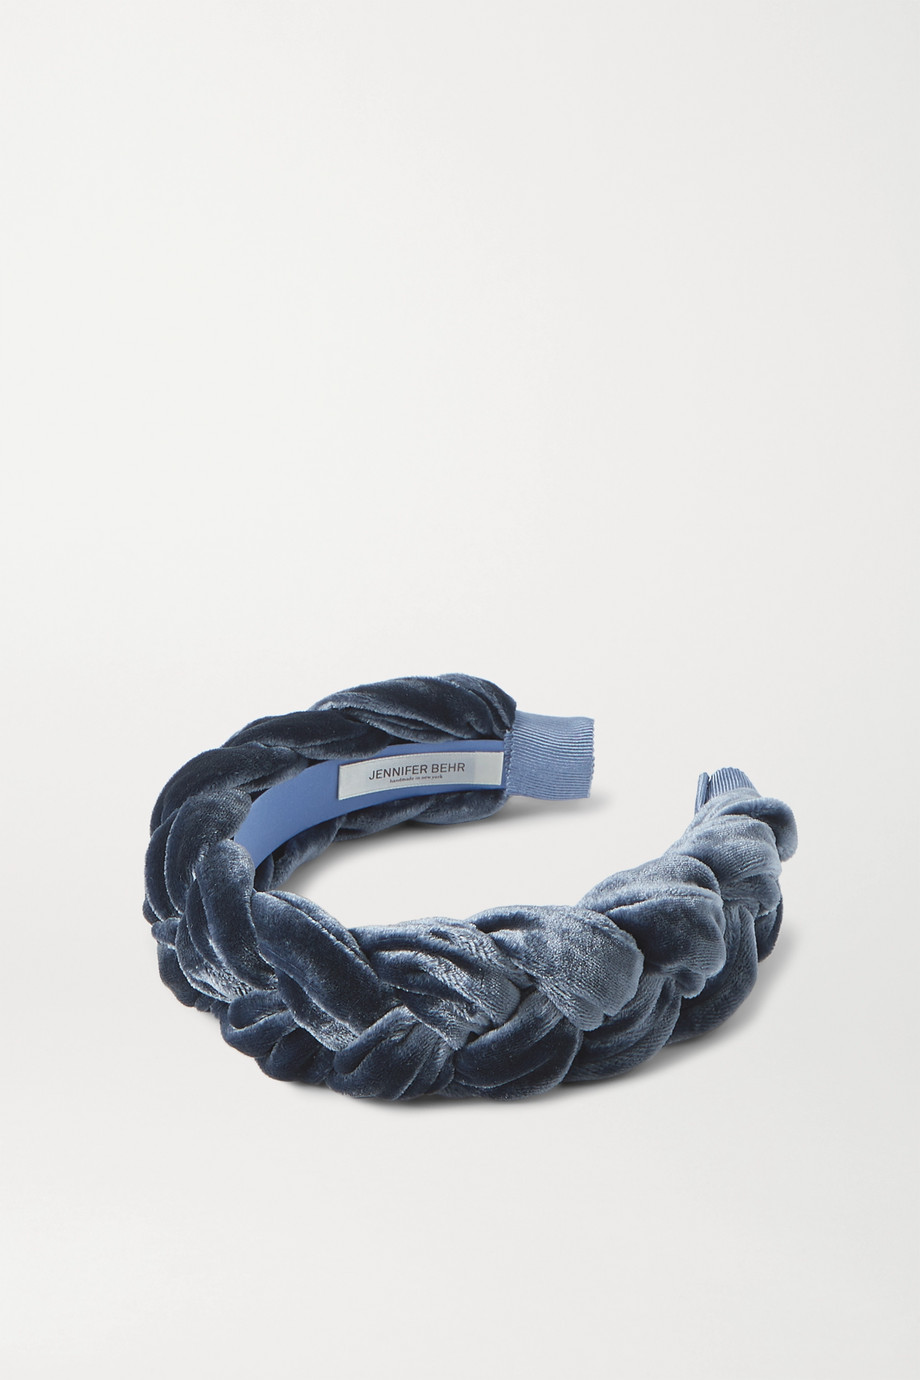 Jennifer Behr Lorelei braided velvet headband